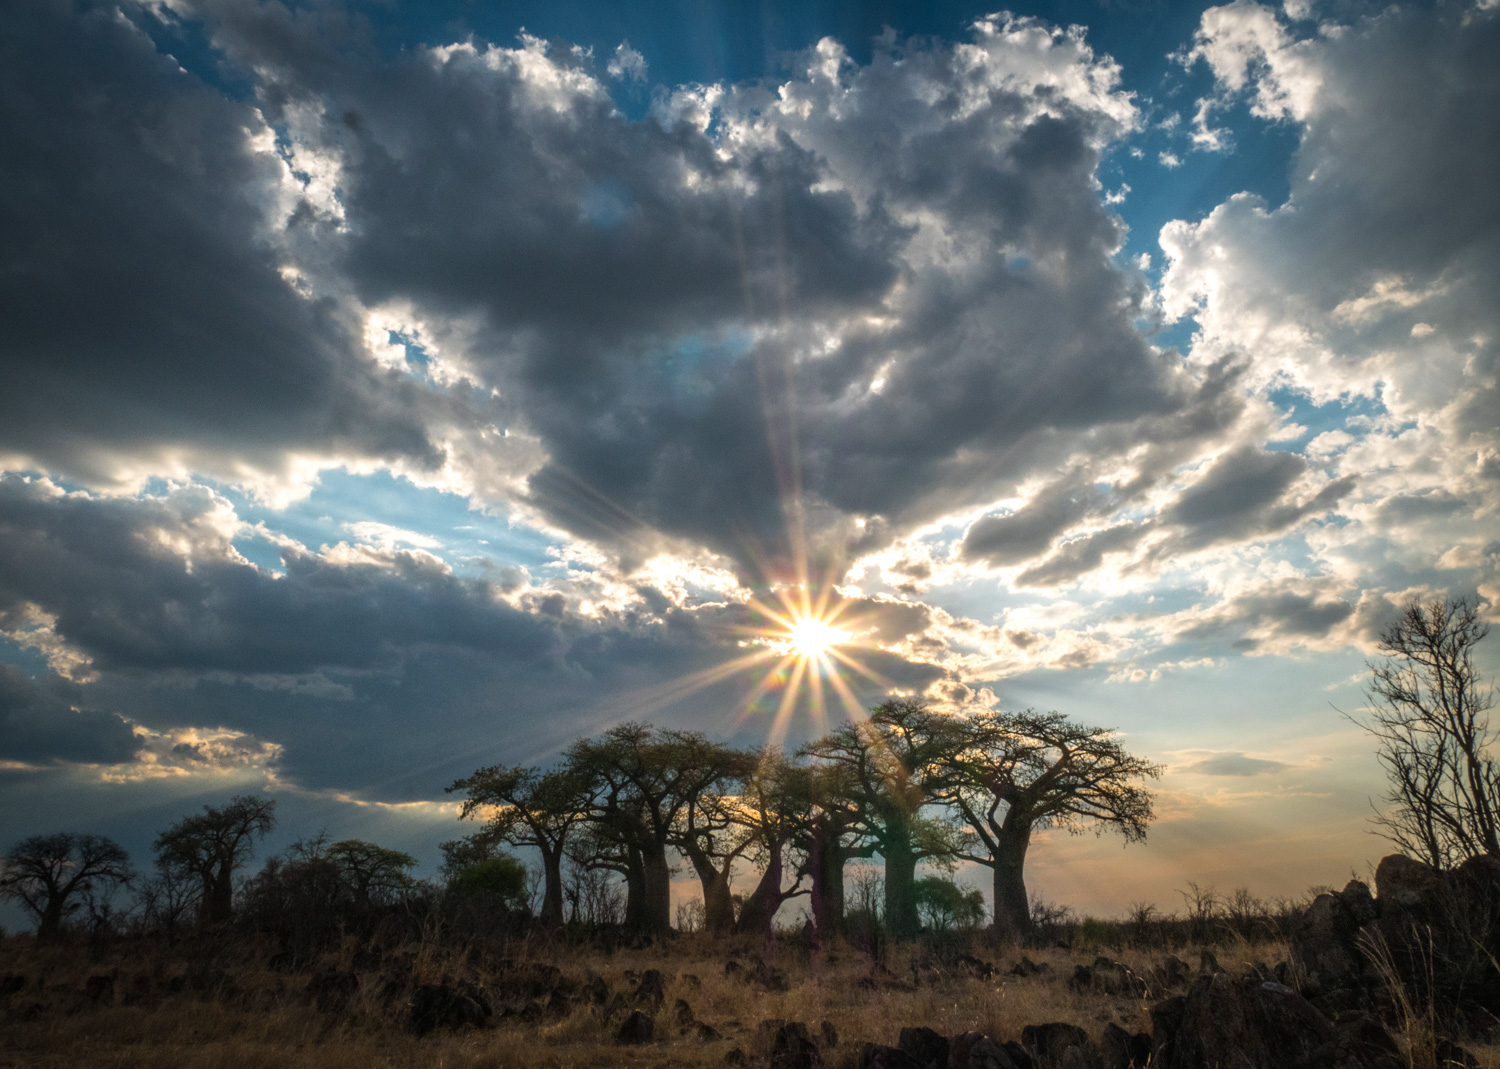 sun burst over trees in Africa - Five (More) Uncomfortable Truths About Photography